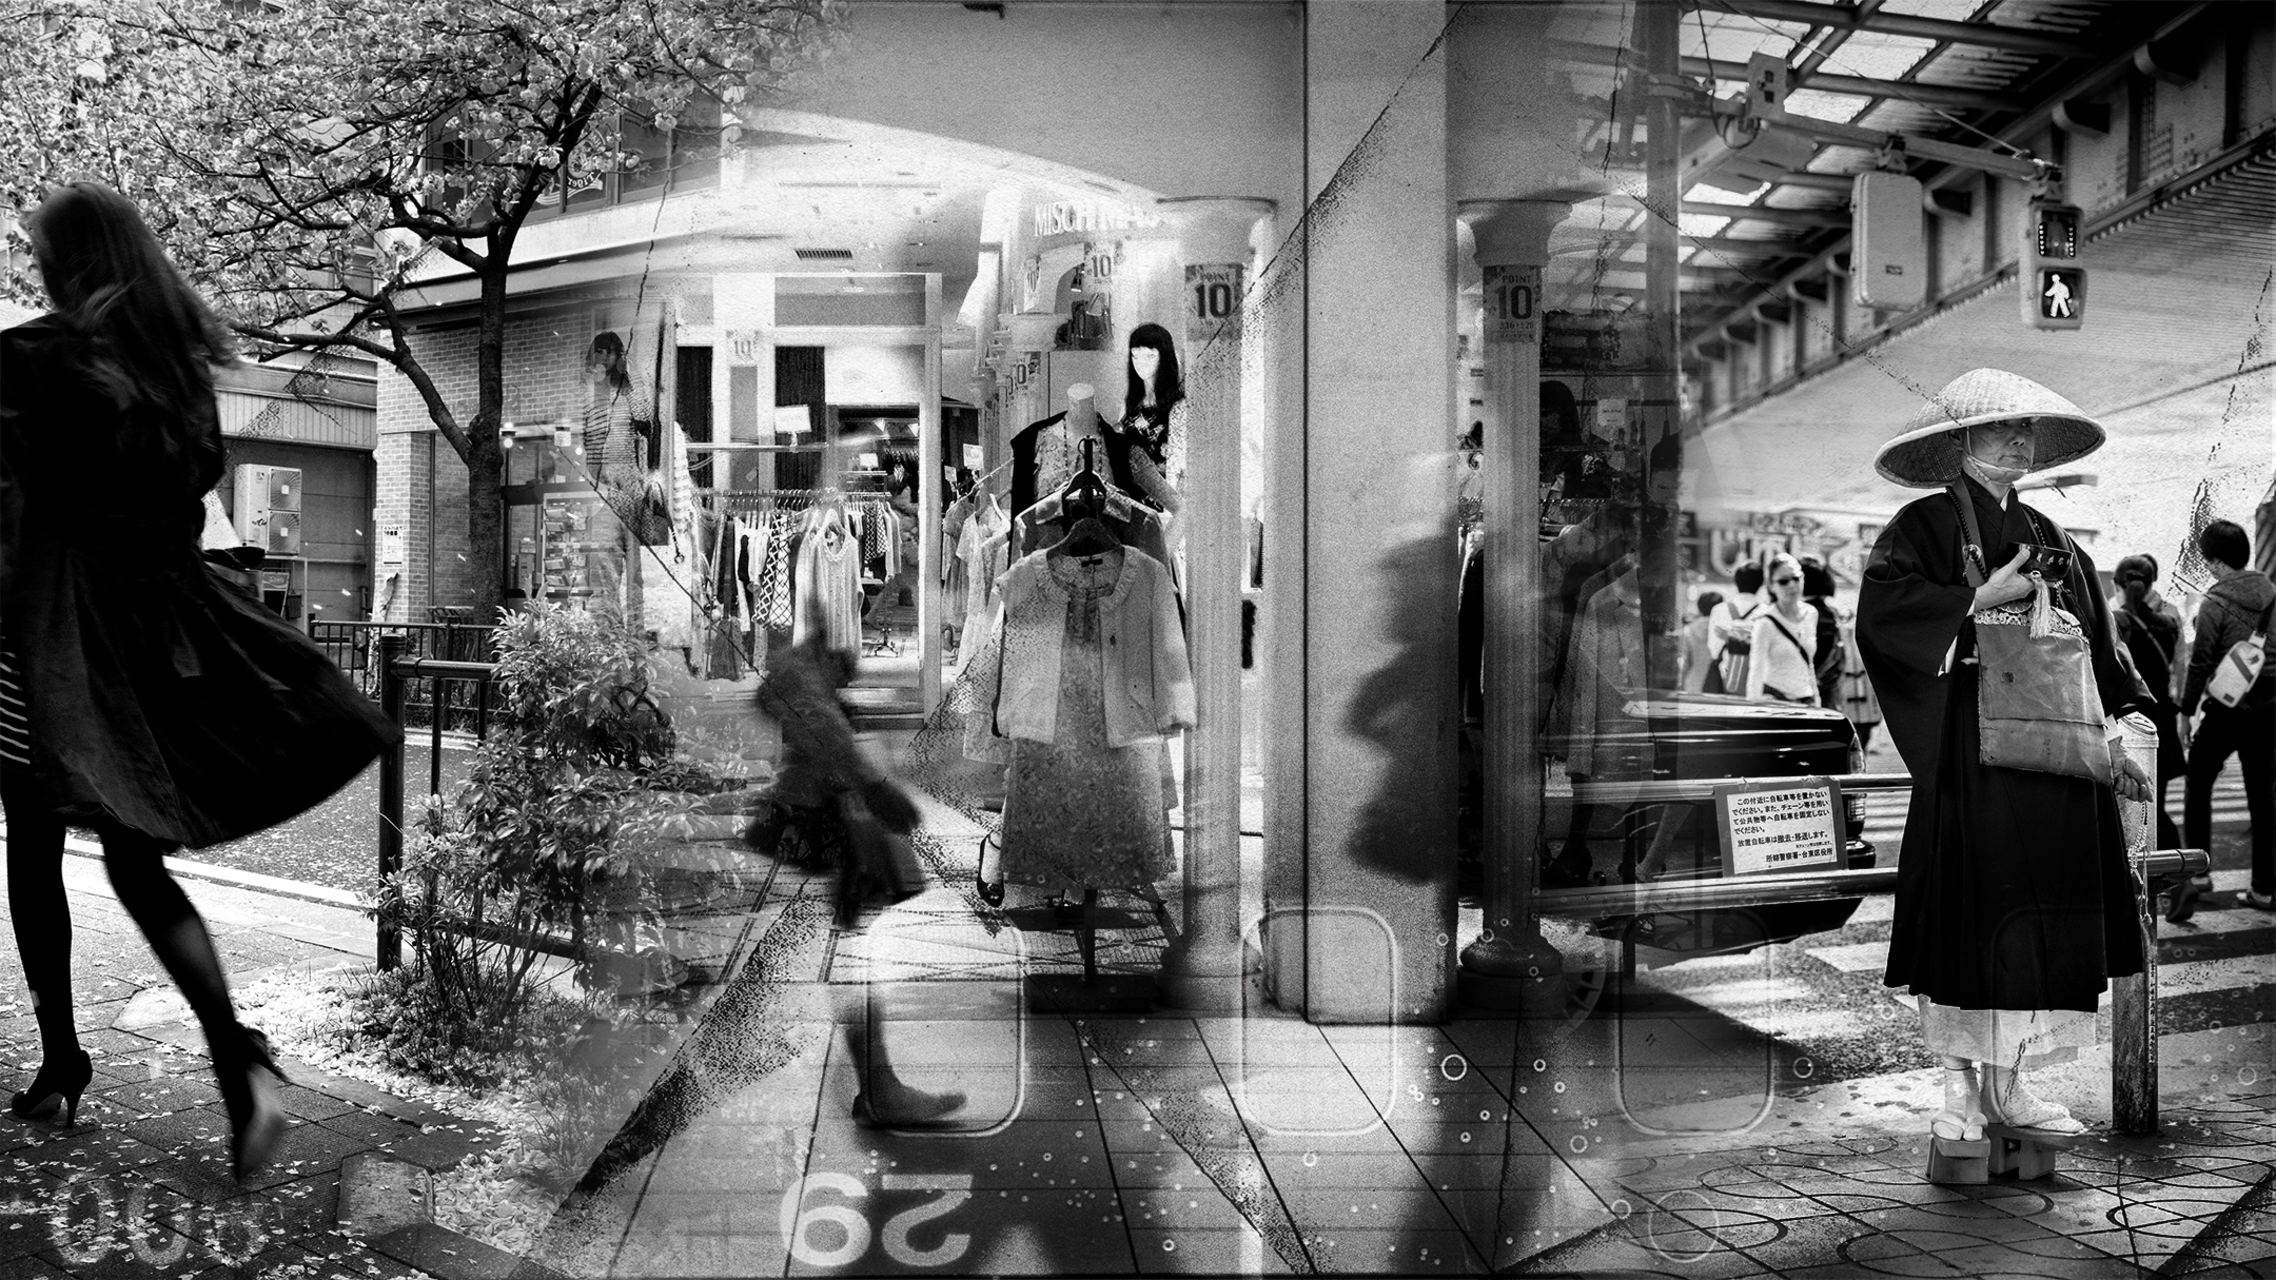 THE SOUL OF JAPAN: Profound Tranquility or Modern Loneliness? (WabiSabi n.4)